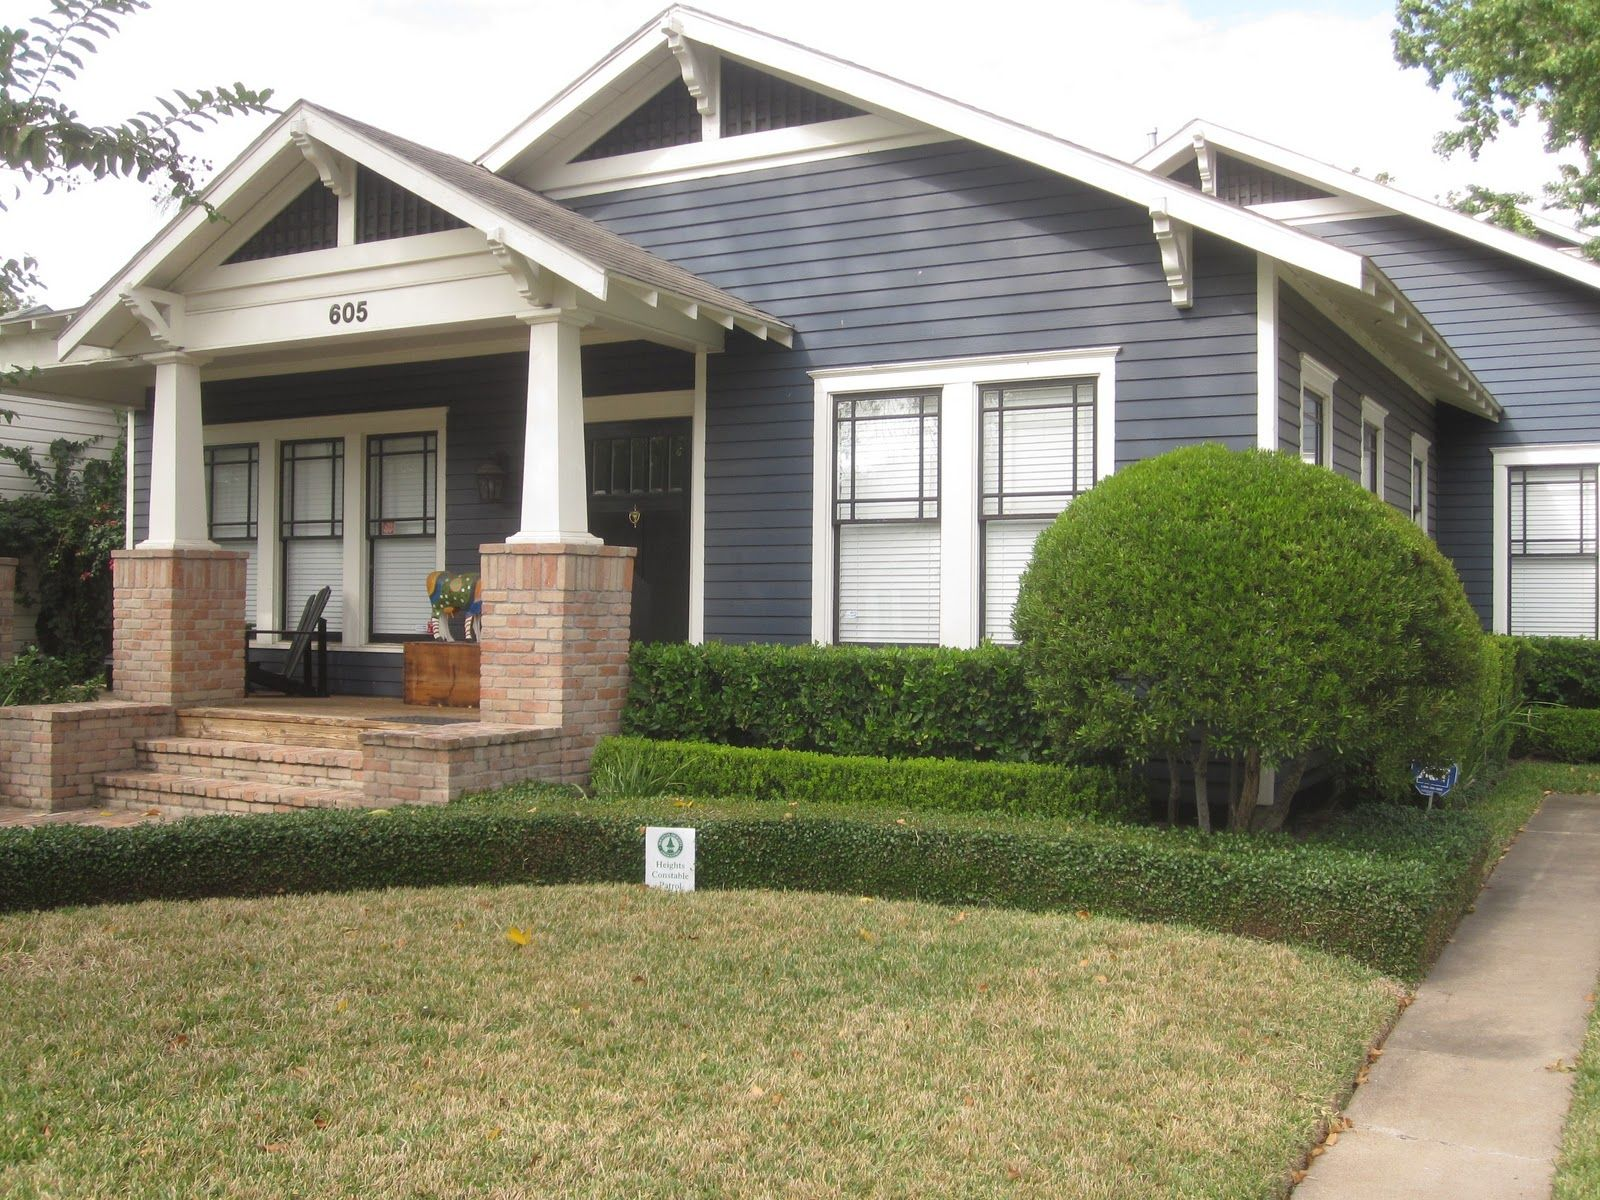 bungalow exterior paint color schemes immaculately kept bungalow of blue gray with white trim